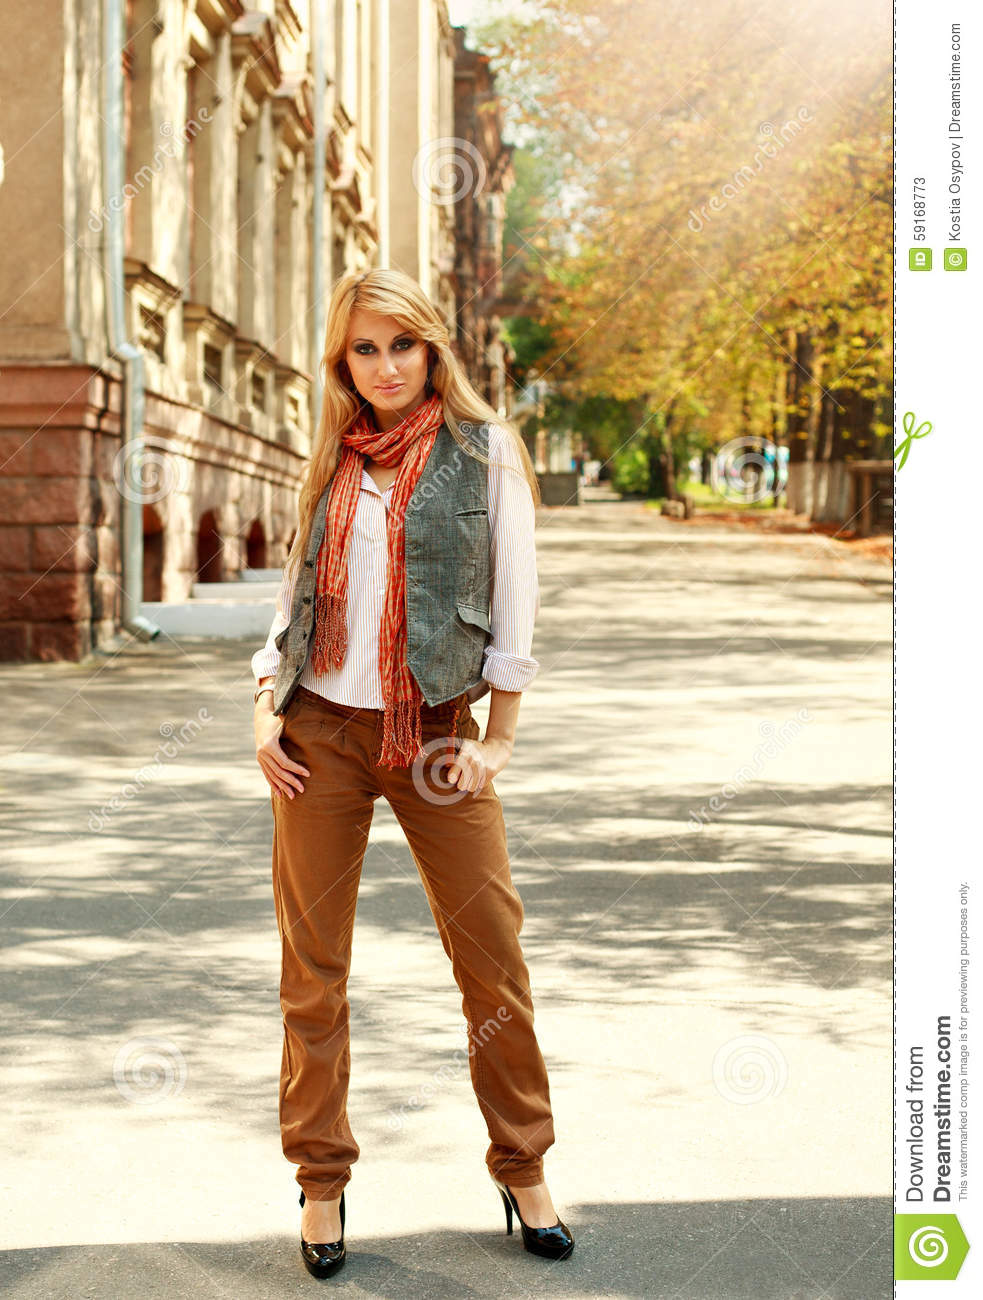 Fashion Woman In Retro Style On A City Street In Autumn